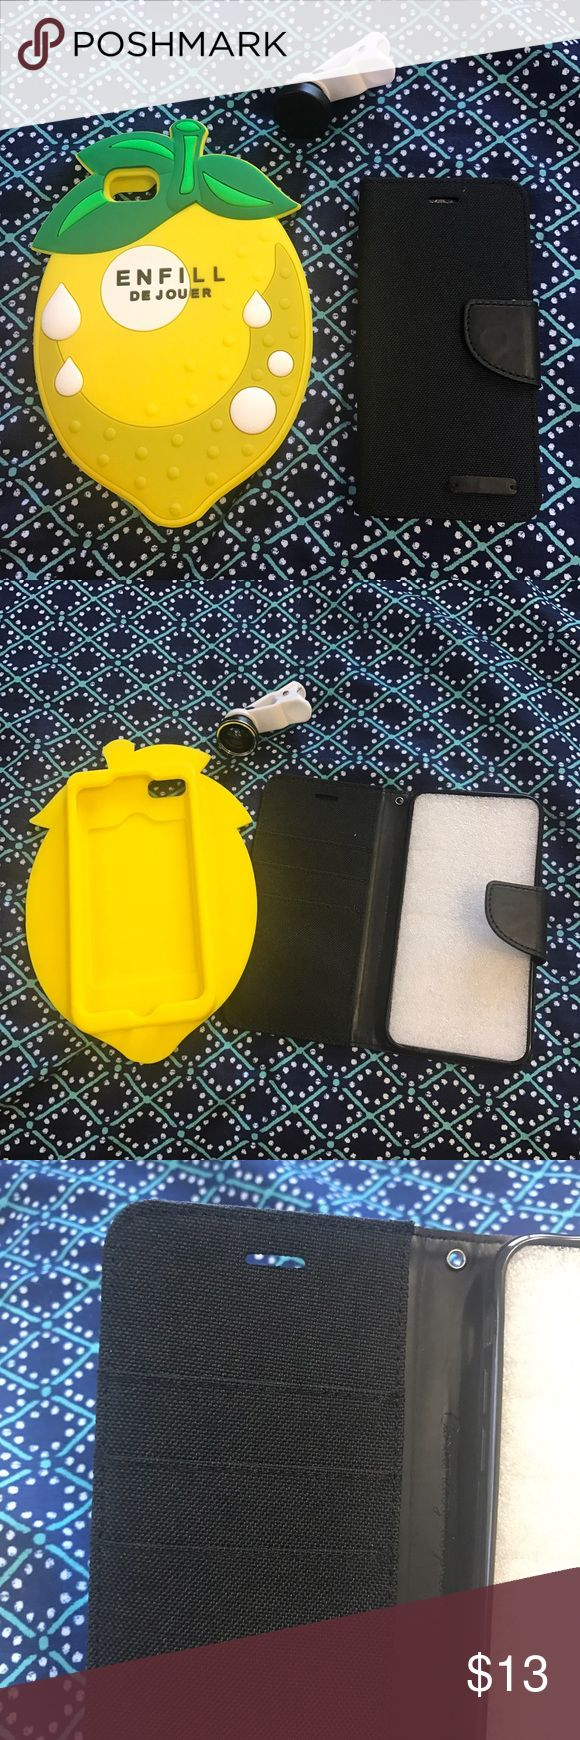 2 iPhone 7 phone cases and free fish eye lens New cases, no damages! Comes with new fish eye lens!!  -- Price is final (Bundle and safe with other items) Accessories Phone Cases